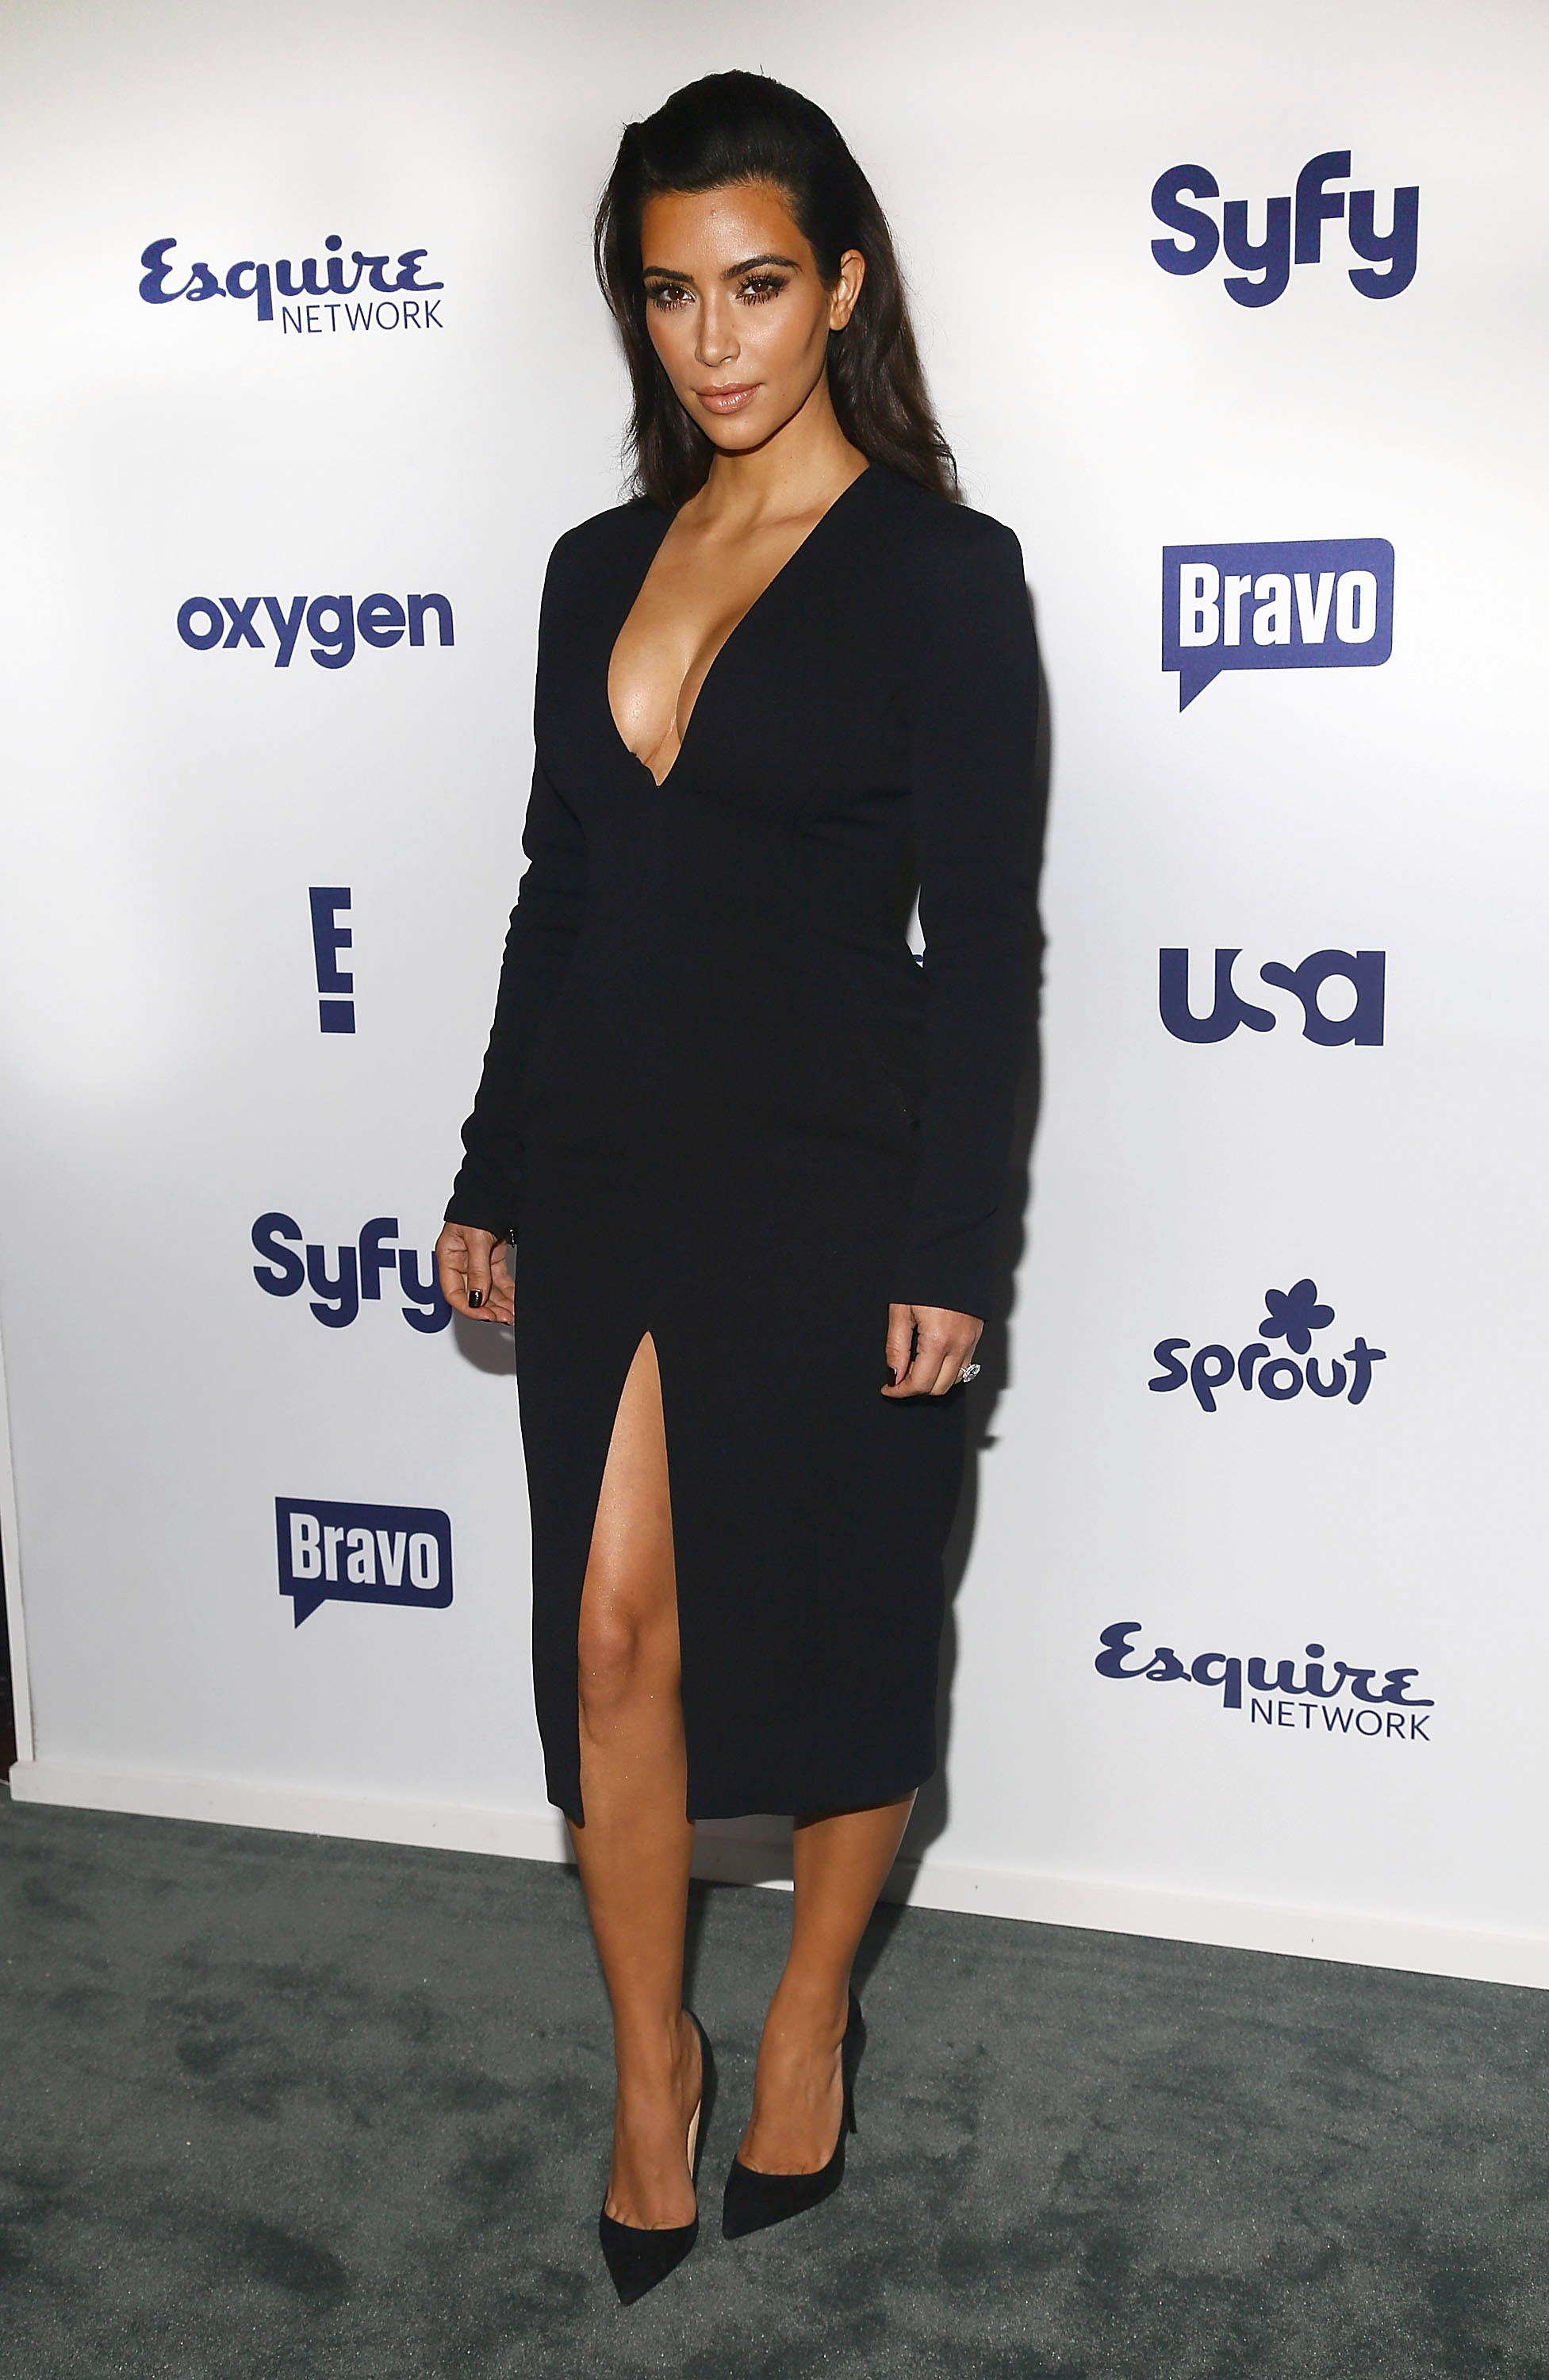 Kim Kardashian 39 S Memorable Red Carpet Looks From 2014 Star Magazine